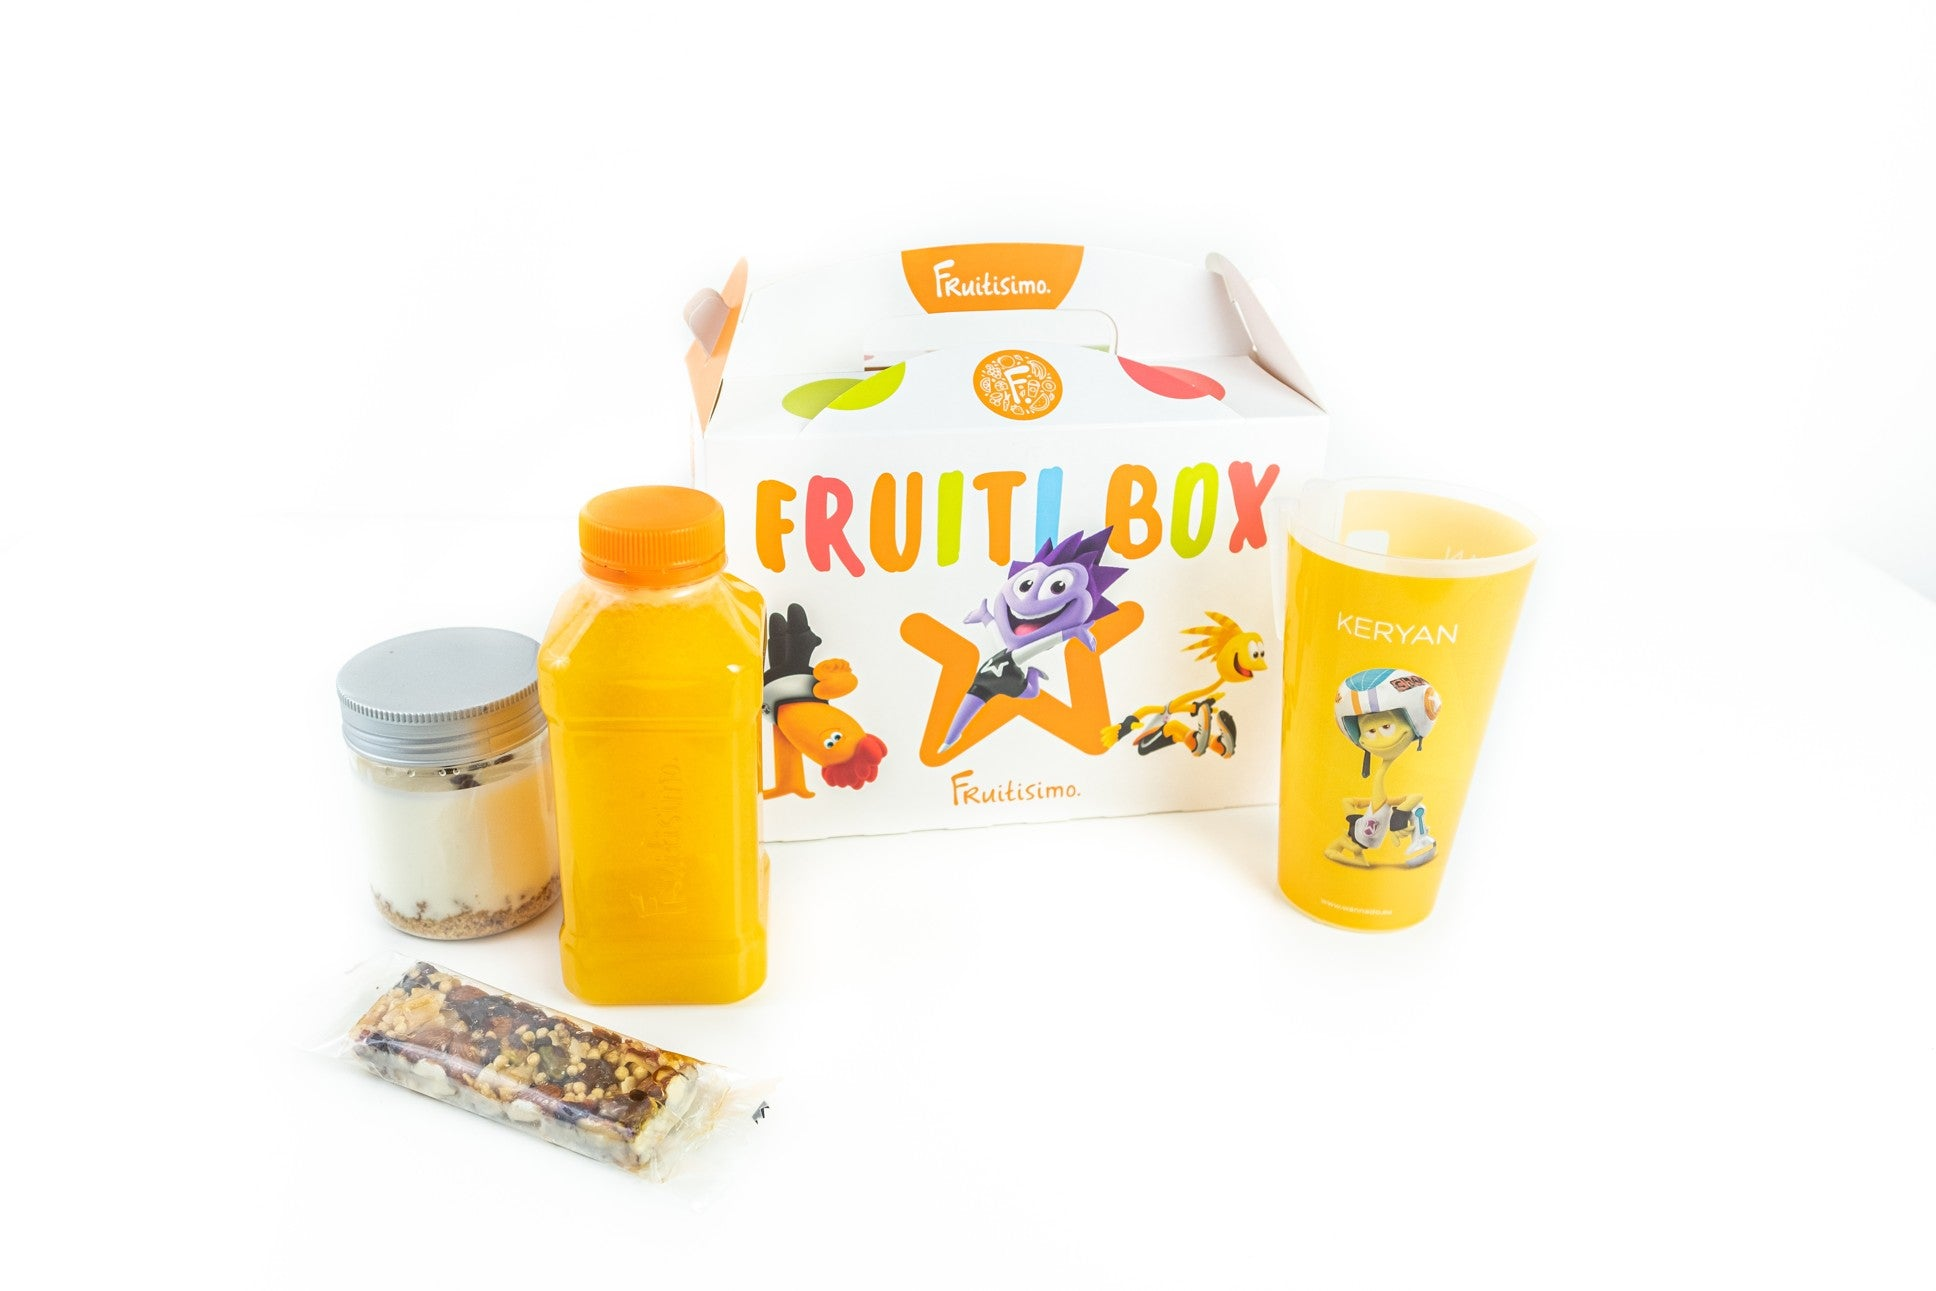 FRUITI BOX KERYAN